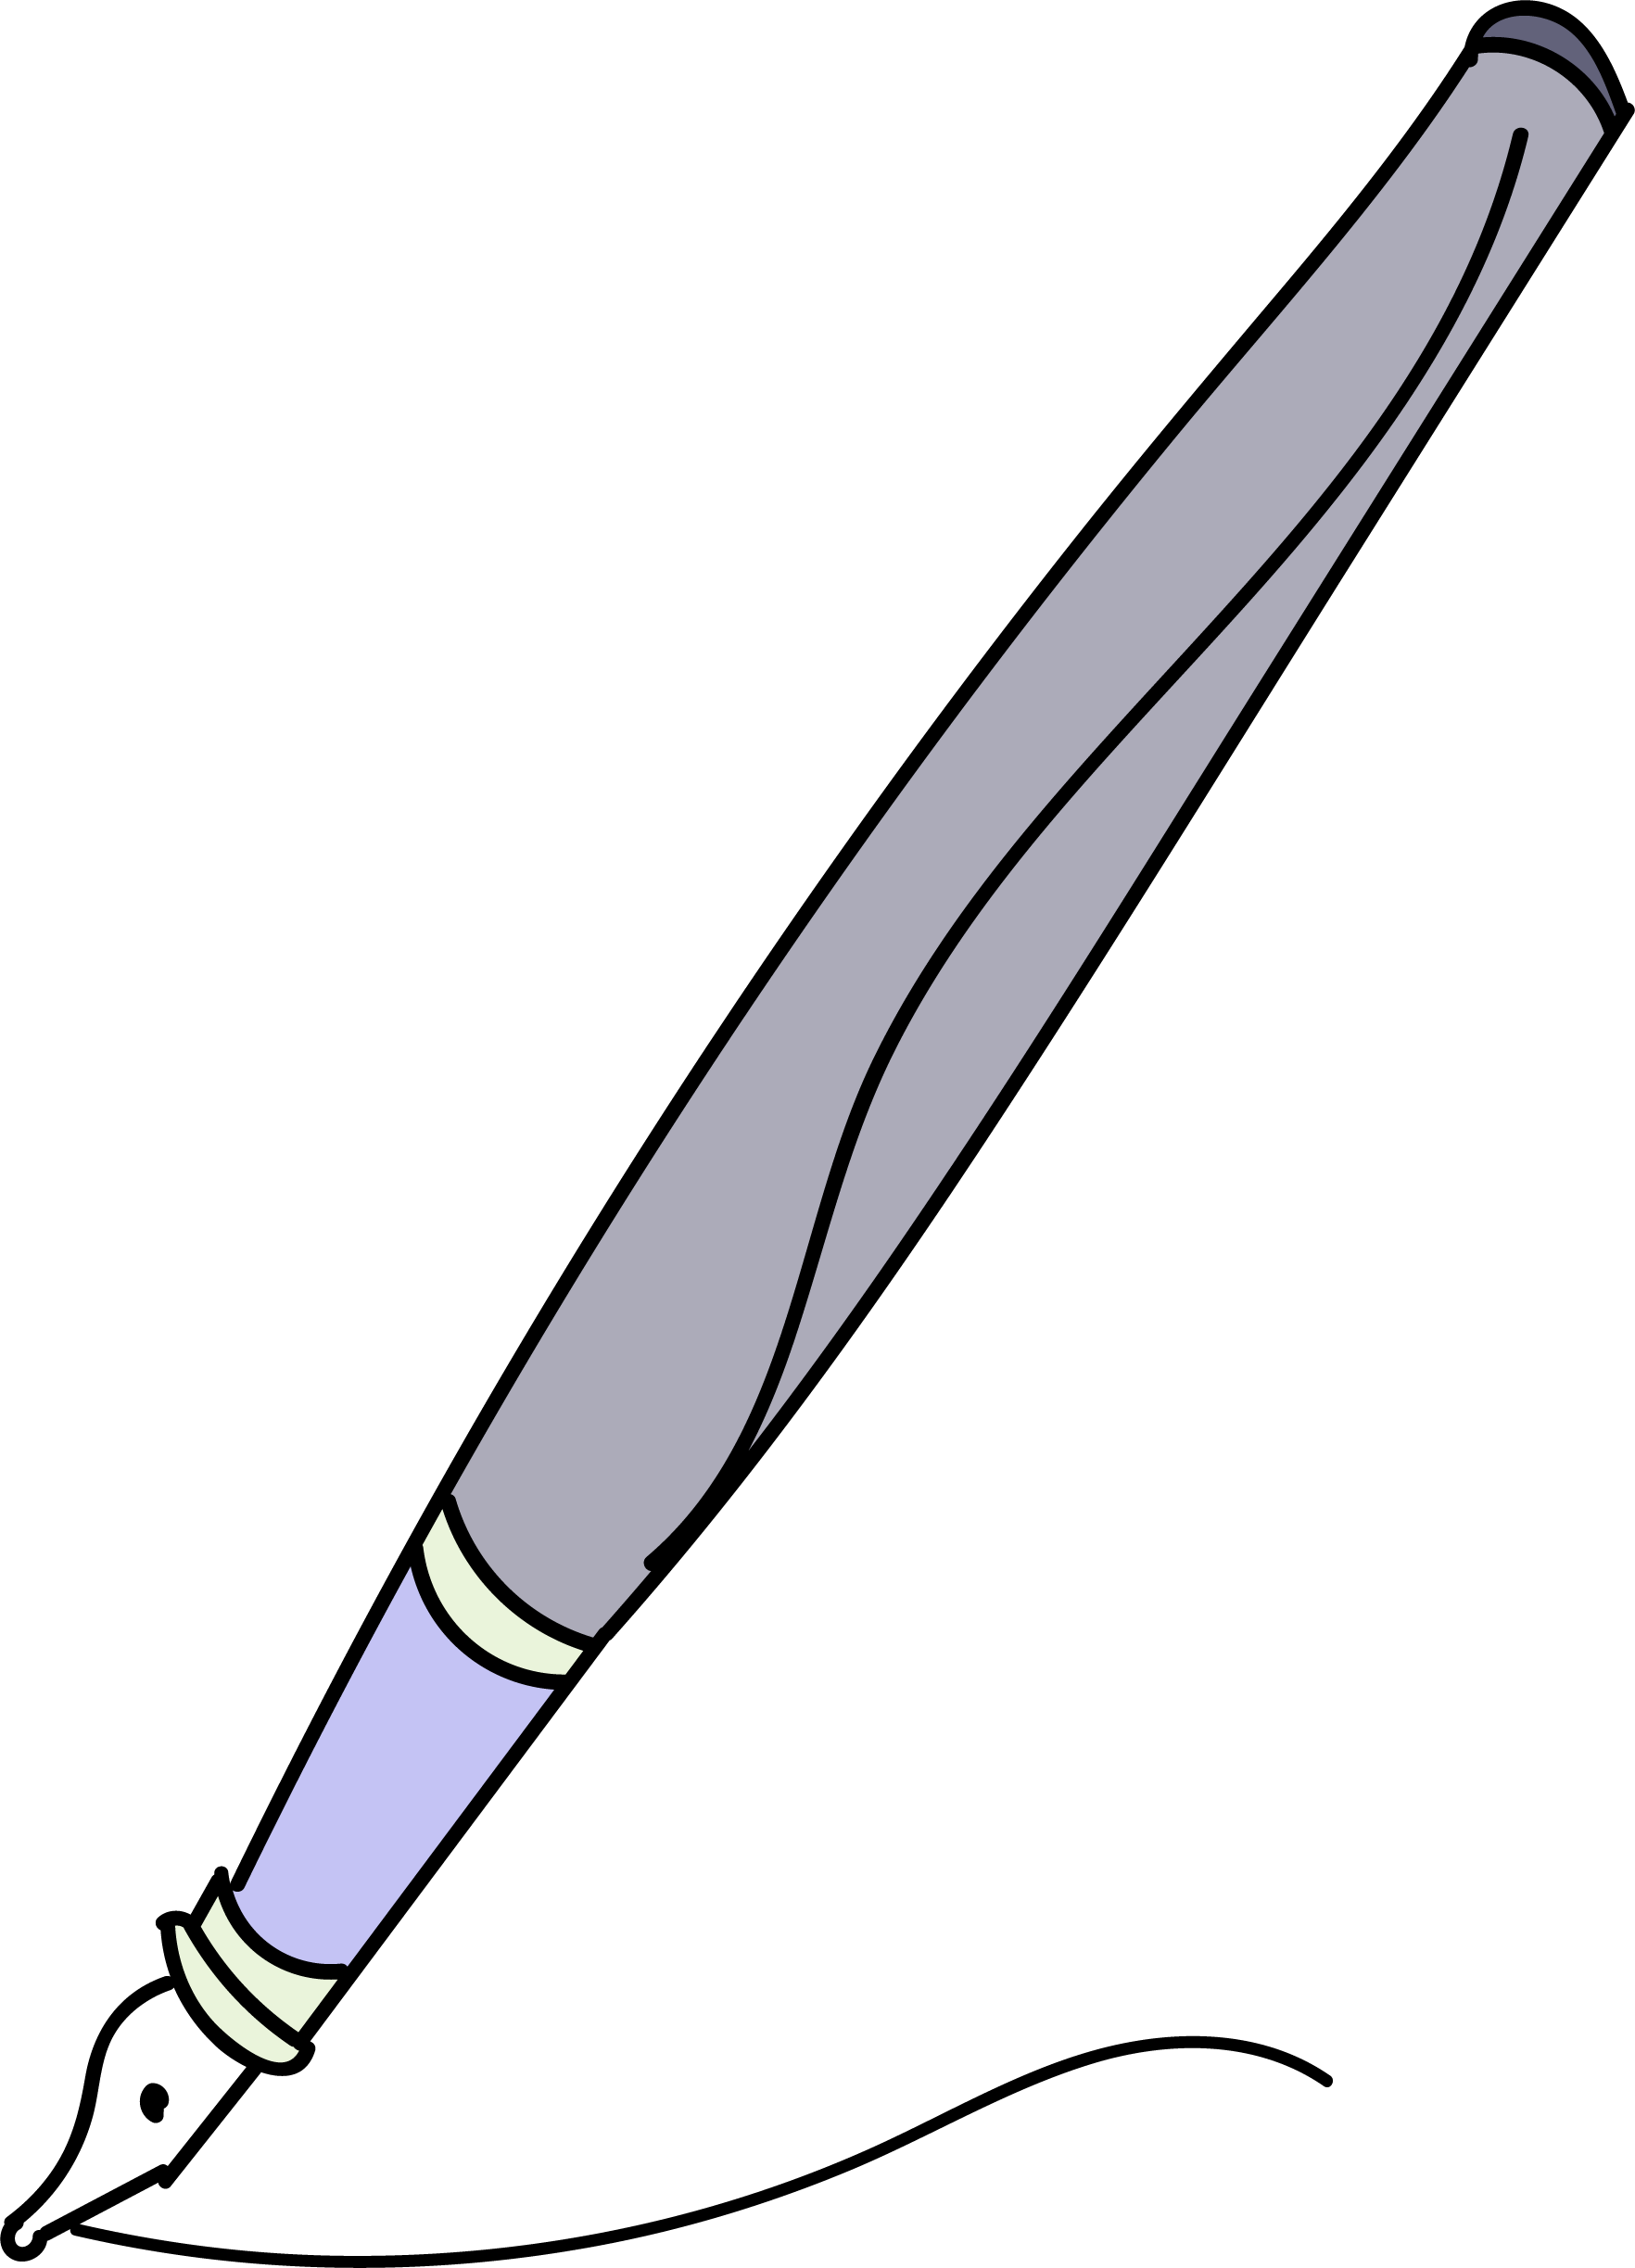 Calligraphy side view png. Clipart images pen